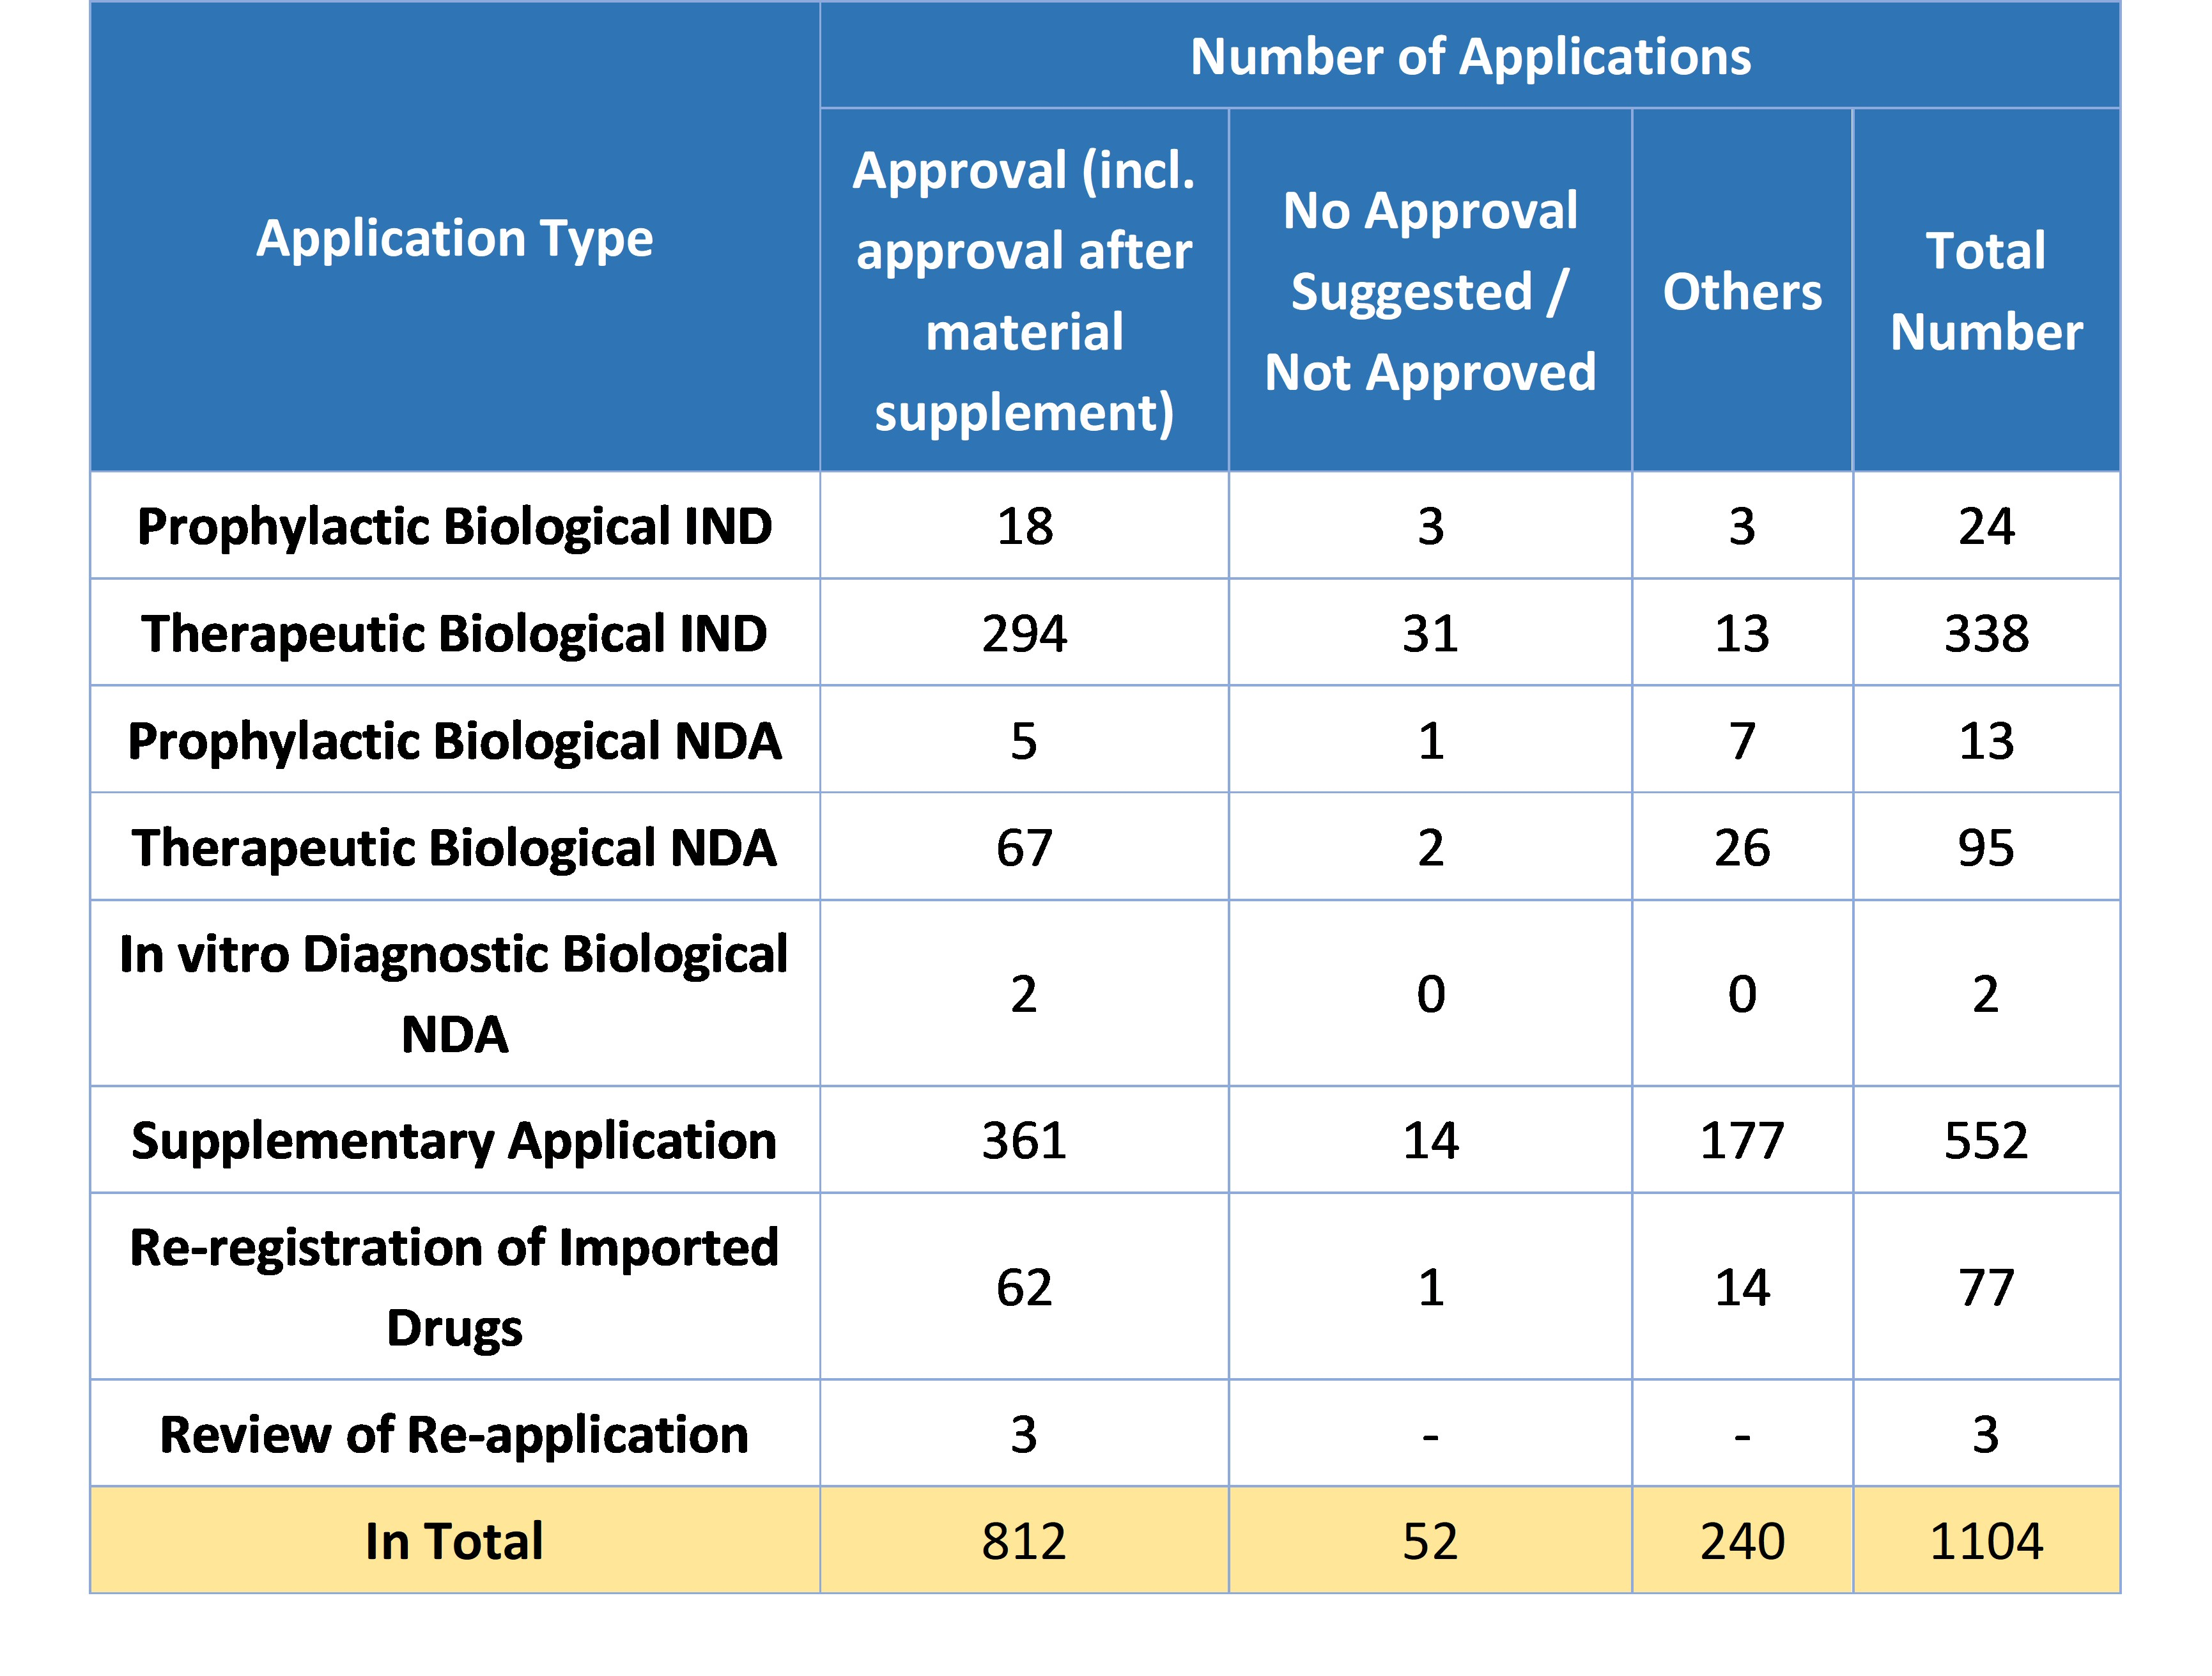 Table 7. Overview of Approvals for Biological Product Registrations in 2019